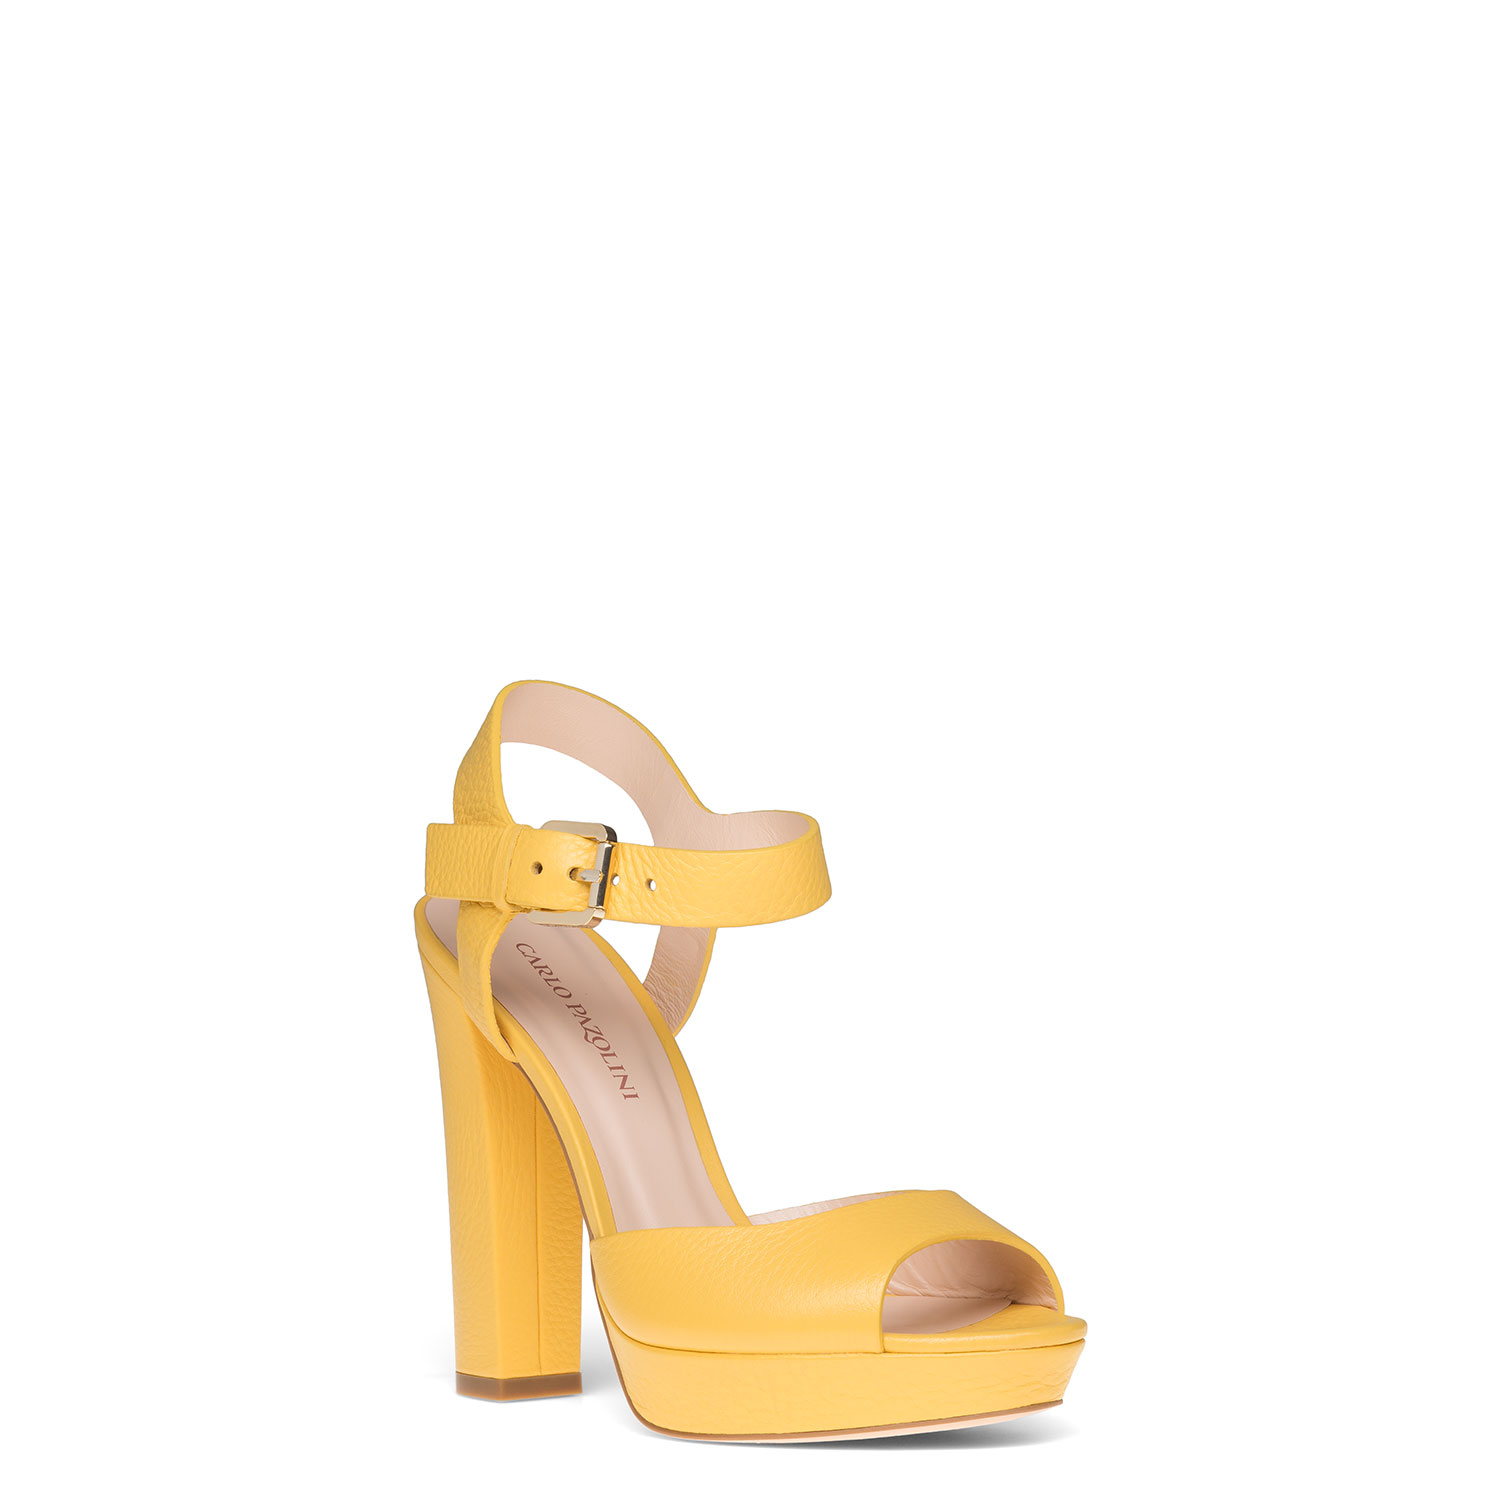 Women's sandals PAZOLINI FL-STB1-13MC